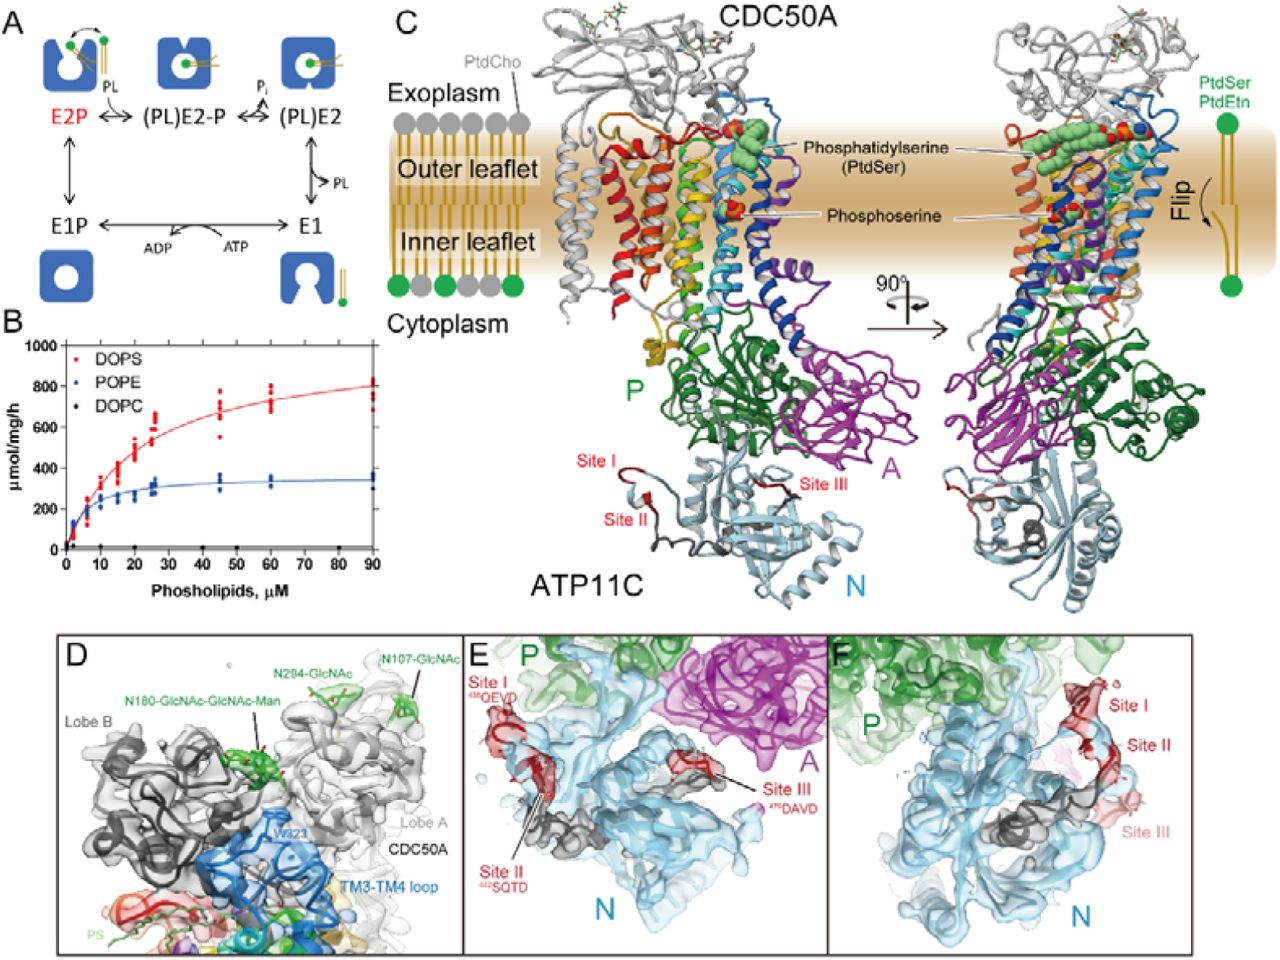 Structural determination of ATP11C-CDC50A complex (A) Construction of TP11C and CDC50A used in crystallization. See Methods for details. (B) Purification of ATP11C-CDC50A complex. Lane 1: solubilized cell lysate, lane 2: pass-through of Flag resin, lane 3: wash fraction, lane 4: elution by Flag peptide (subjected to ATPase assay), lane 5: TEV proteinase- and endoglycosidase-treated sample, lane 6: pass-through fraction of Ni-NTA and amylose resin, lane 7: concentrated peak fractions by size-exclusion chromatography (arrowhead in the left panel). Arrowheads on the right indicated as follows, a: HSP70, b: EndoHf, c: cleaved eGFP, d: TEV proteinase. The elution profile of ATP11C-CDC50A complex by size-exclusion column chromatography is shown on the left. (C) Representative X-ray diffraction obtained from a plate-like crystal shown in D. Diffraction spots better than 3.6Å were obtained along the c * -axis, whereas these are limited to around 4∼6Å in directions along with a * - and b * -axes, thus strongly anisotropic. (D,E) Three-dimensional crystals obtained from the samples purified from Expi293 cells, showing thin, but large plate-like crystals (D). In contrast, small crystals were obtained from CDC50A-KO cells (E). (F) Data acquisition strategy. We employed normal type LithoLoops for helical scan data acquisition from large single crystals. However, because crystals showed strong anisotropy, we also collected data sets by irradiating X-ray beam from the direction perpendicular to the c -axis by using 90° bent type LithoLoops. For the small but well diffracting crystals obtained from CDC50A-KO cells, data from each individual crystals was collected for 10°. All of these crystals showed identical unit cell size and symmetry regardless of crystal morphologies and expression cell types, as seen in the histograms of unit cell dimensions (G). All diffraction data from 1,588 crystals were finally merged into a single data set (H), and used for the molecular replacement.